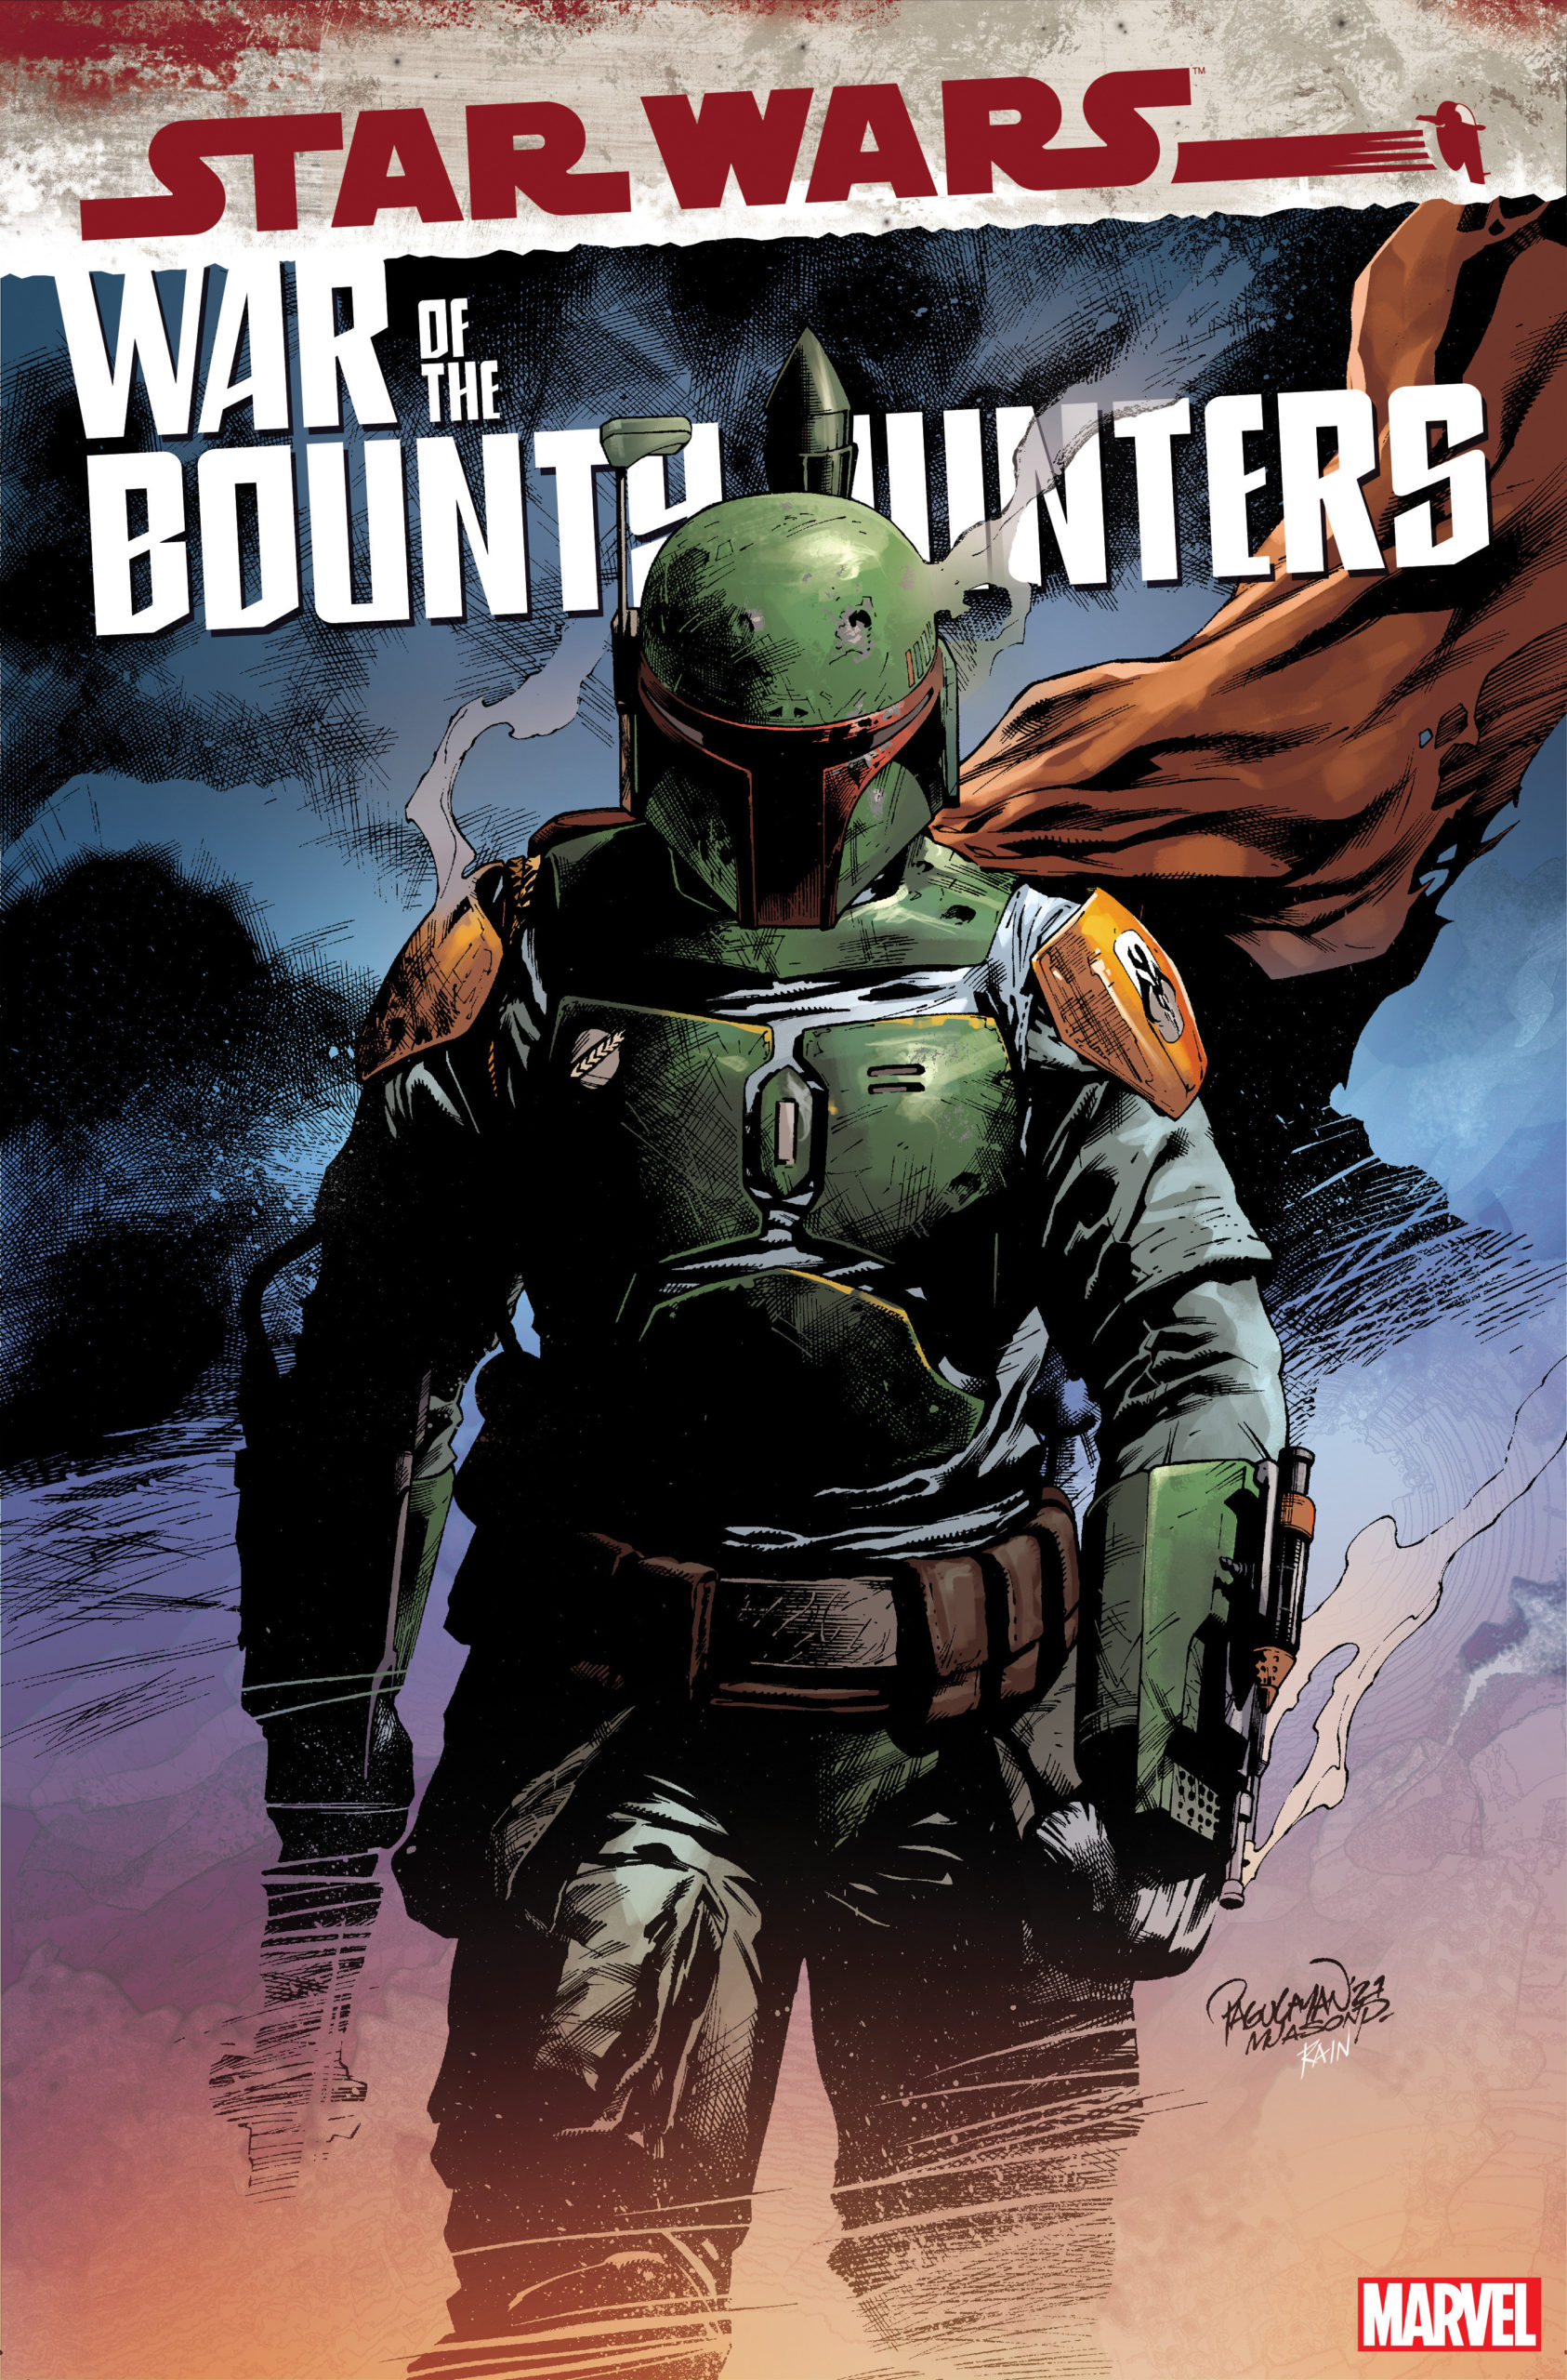 War of the Bounty Hunters #5 (Carlo Pagulayan Variant Cover) (06.10.2021)